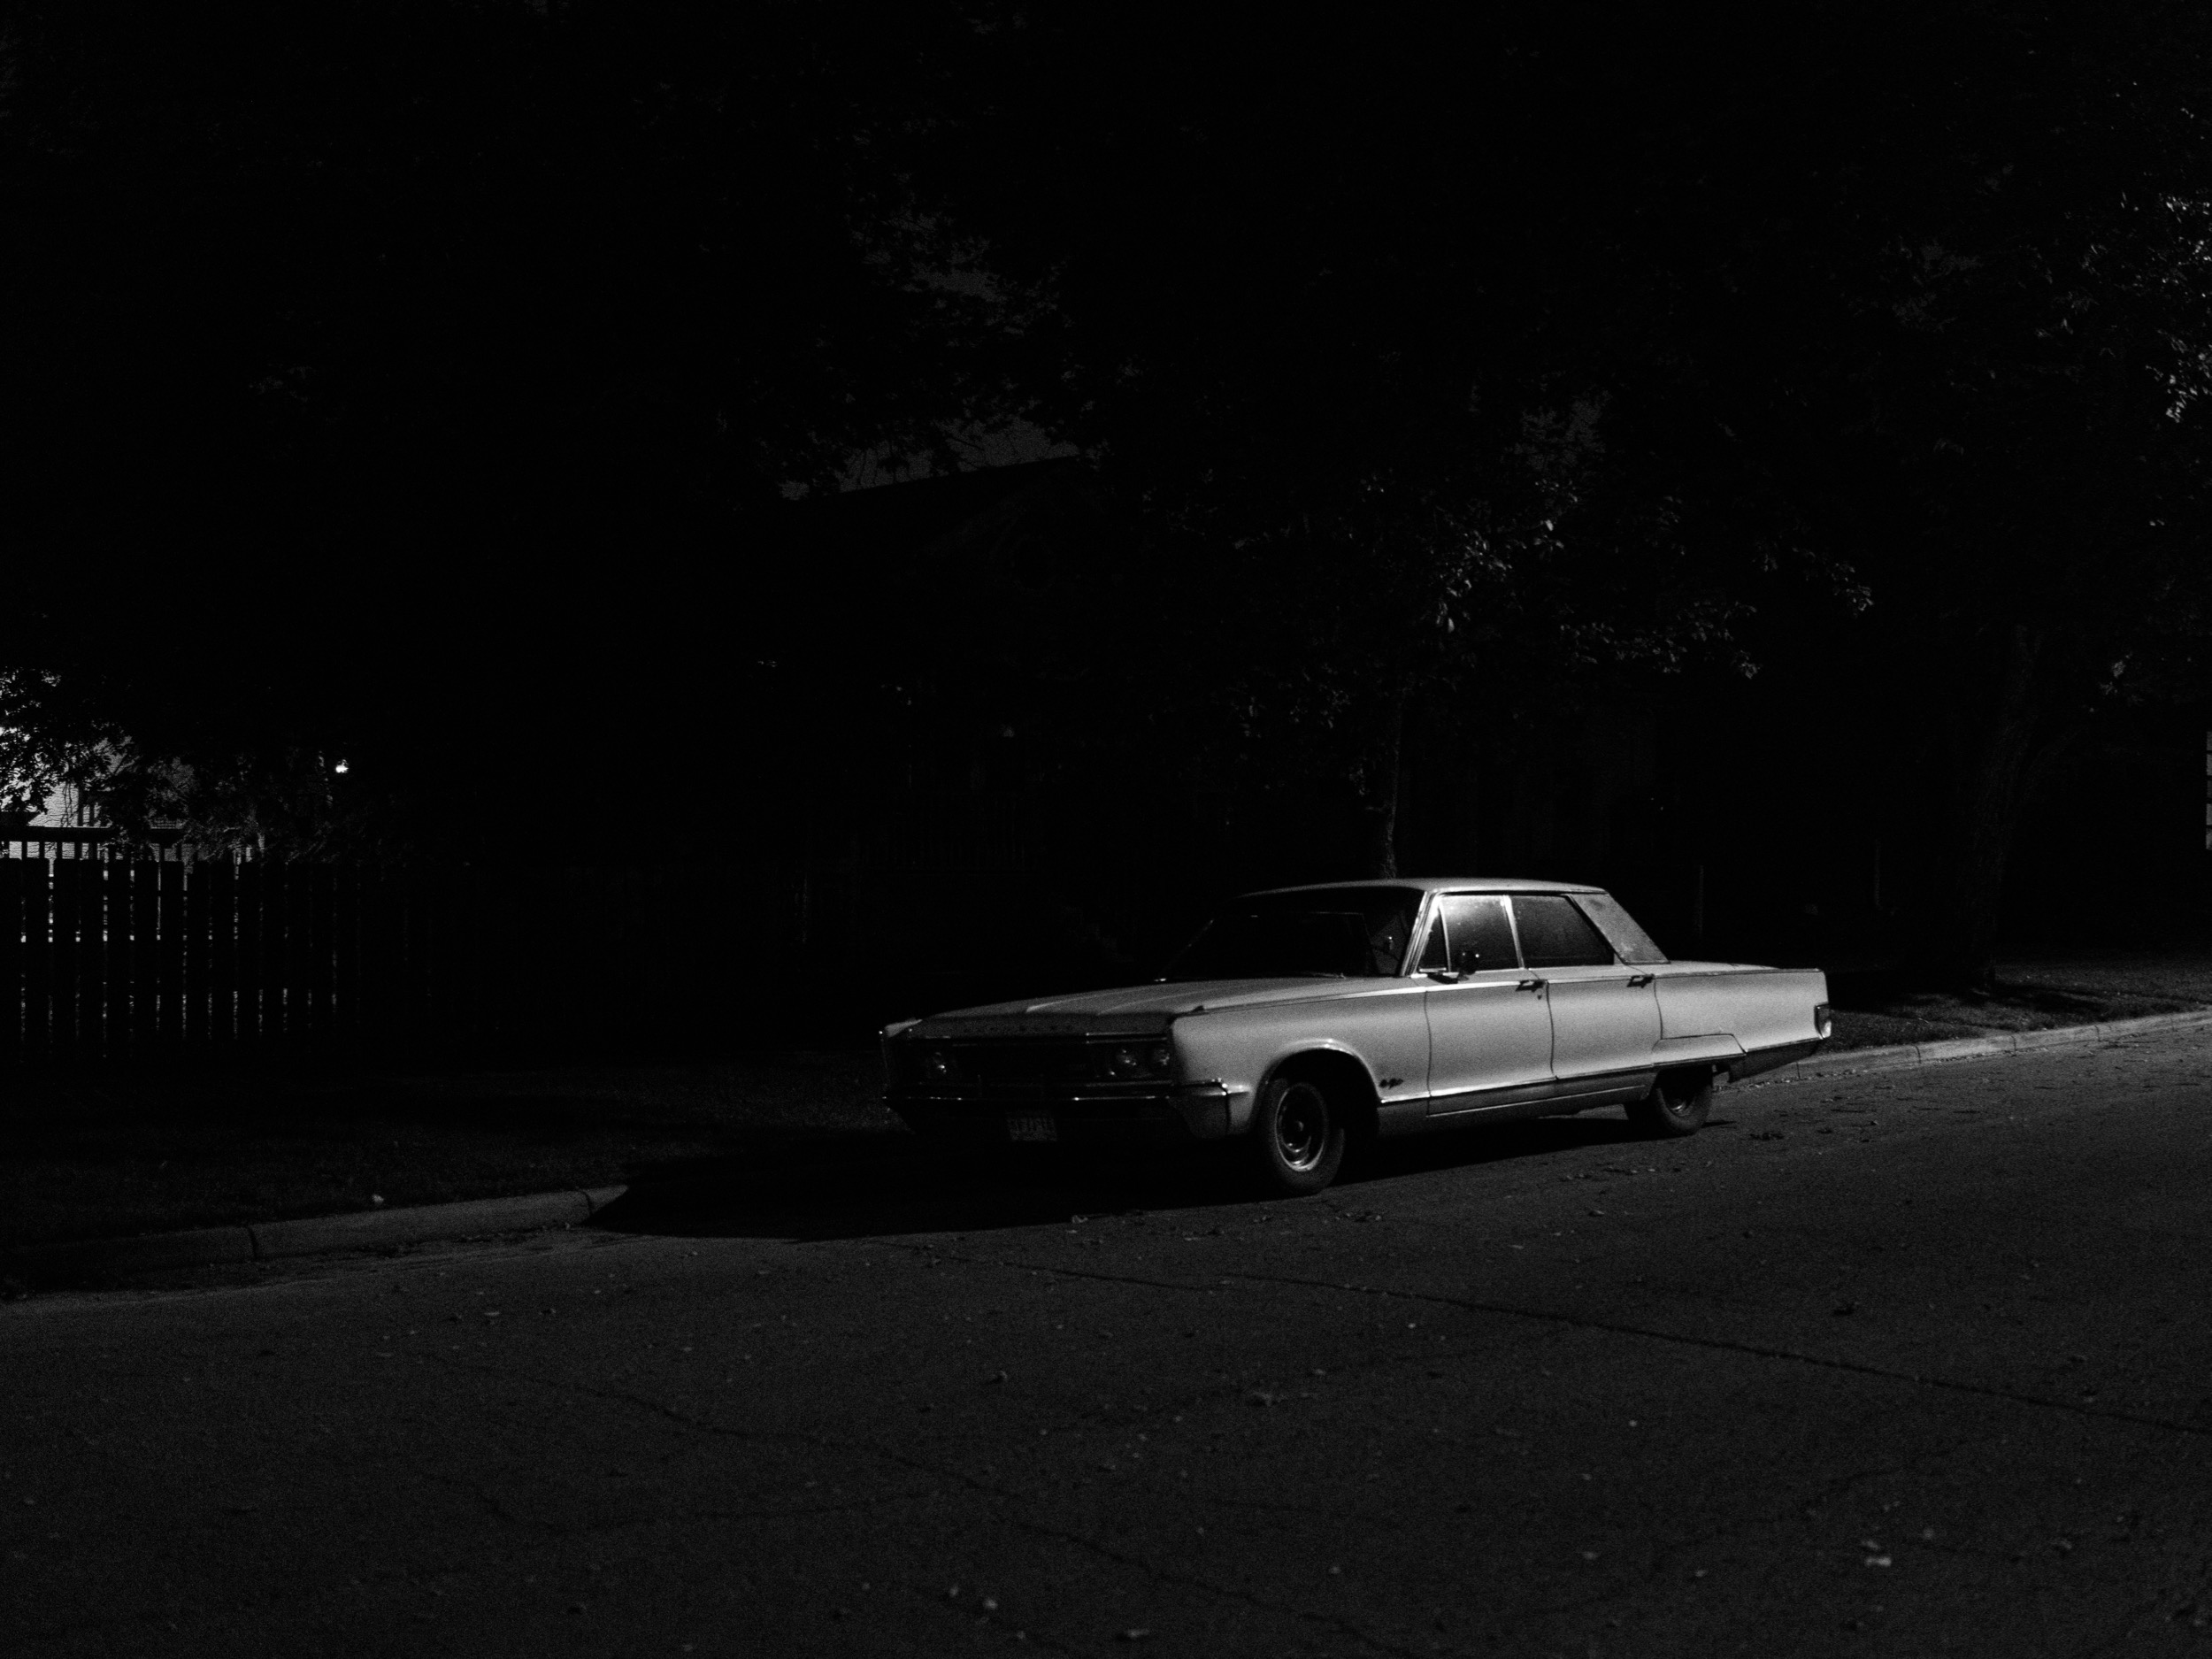 This photo walk happened late at night with strong winds. I could feel the anxiety that Robert Adams described. At any moment, a sound in the distance can conjure a feeling of dread, but it's all part of the excitement. And I found a classic car—it couldn't get better.